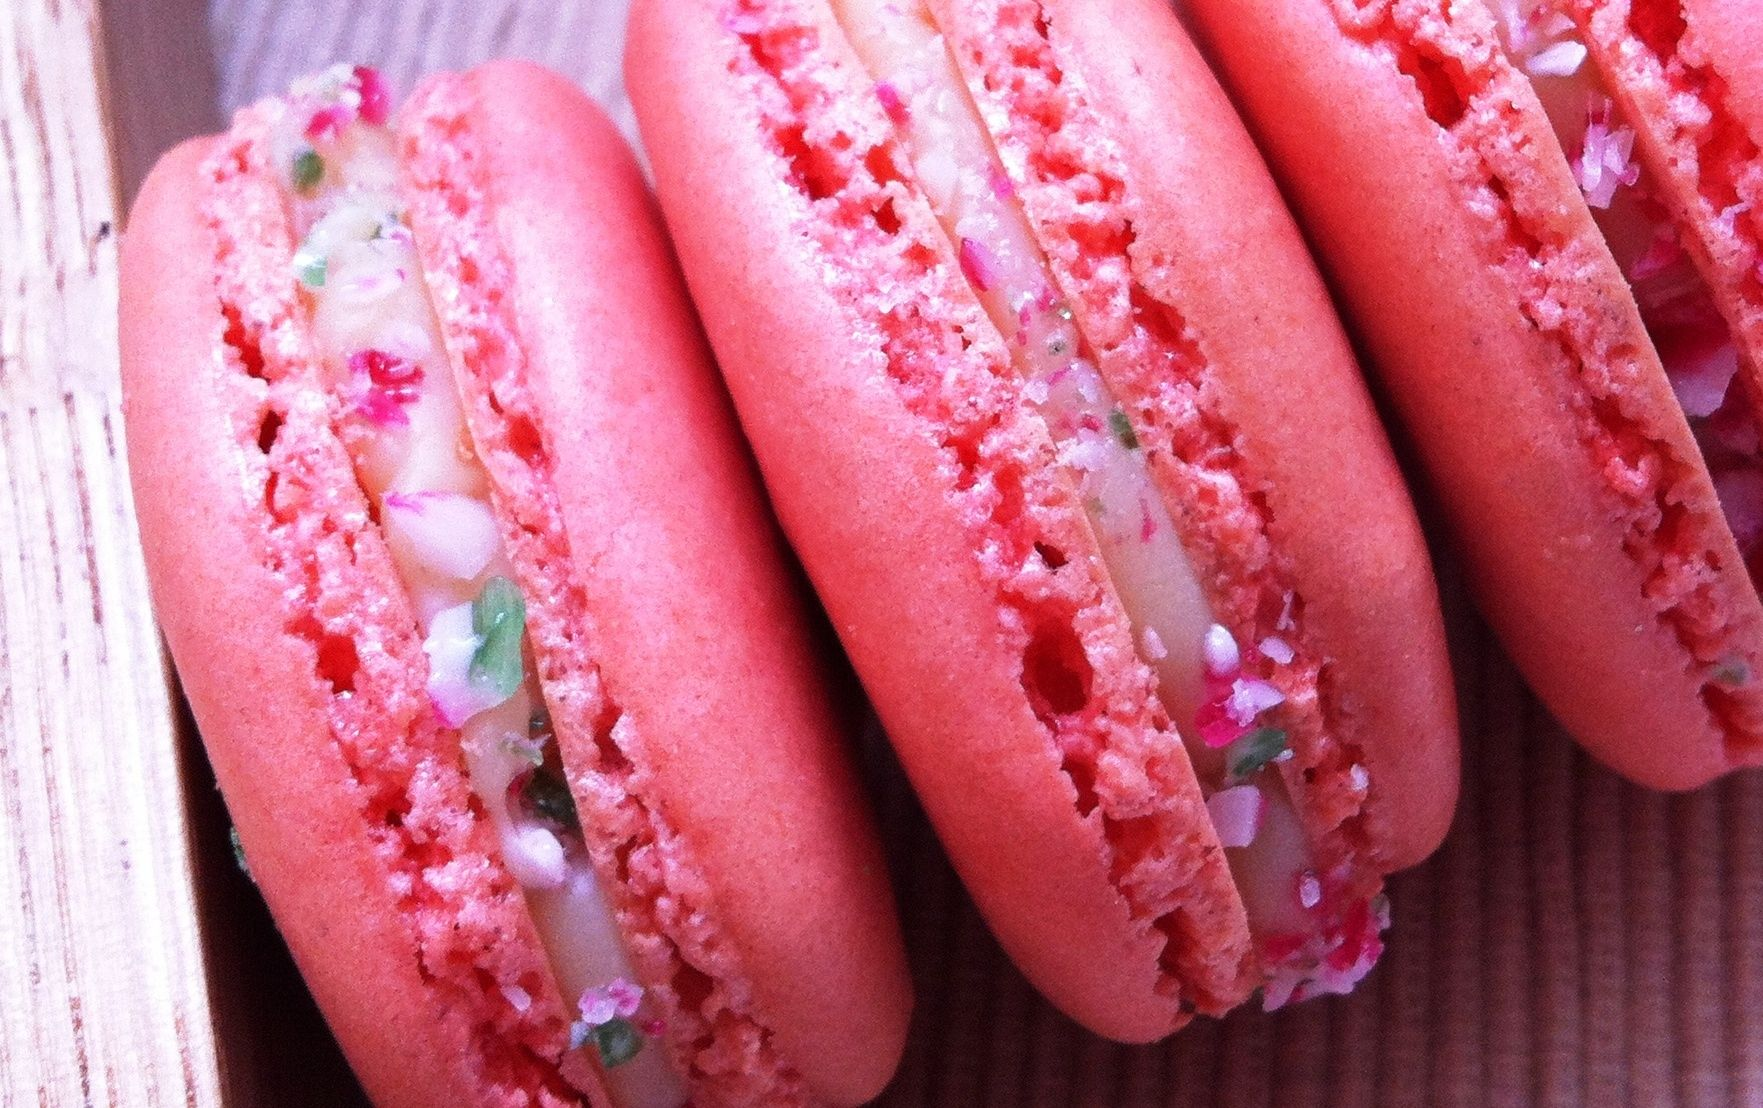 White Chocolate Peppermint Candy Cane Macarons Chocolate Peppermint Peppermint Candy Cane Macarons